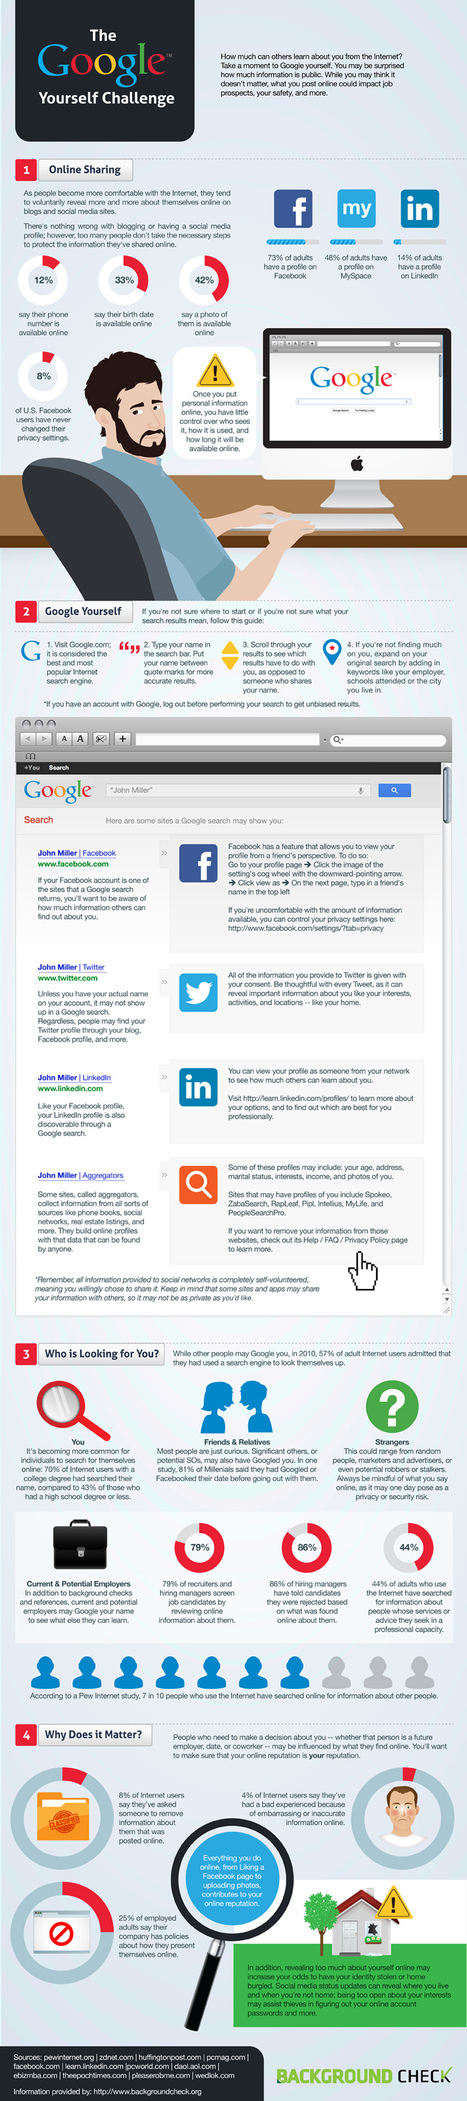 Google Yourself For Safety [Infographic] | Social Media, etc. | Scoop.it